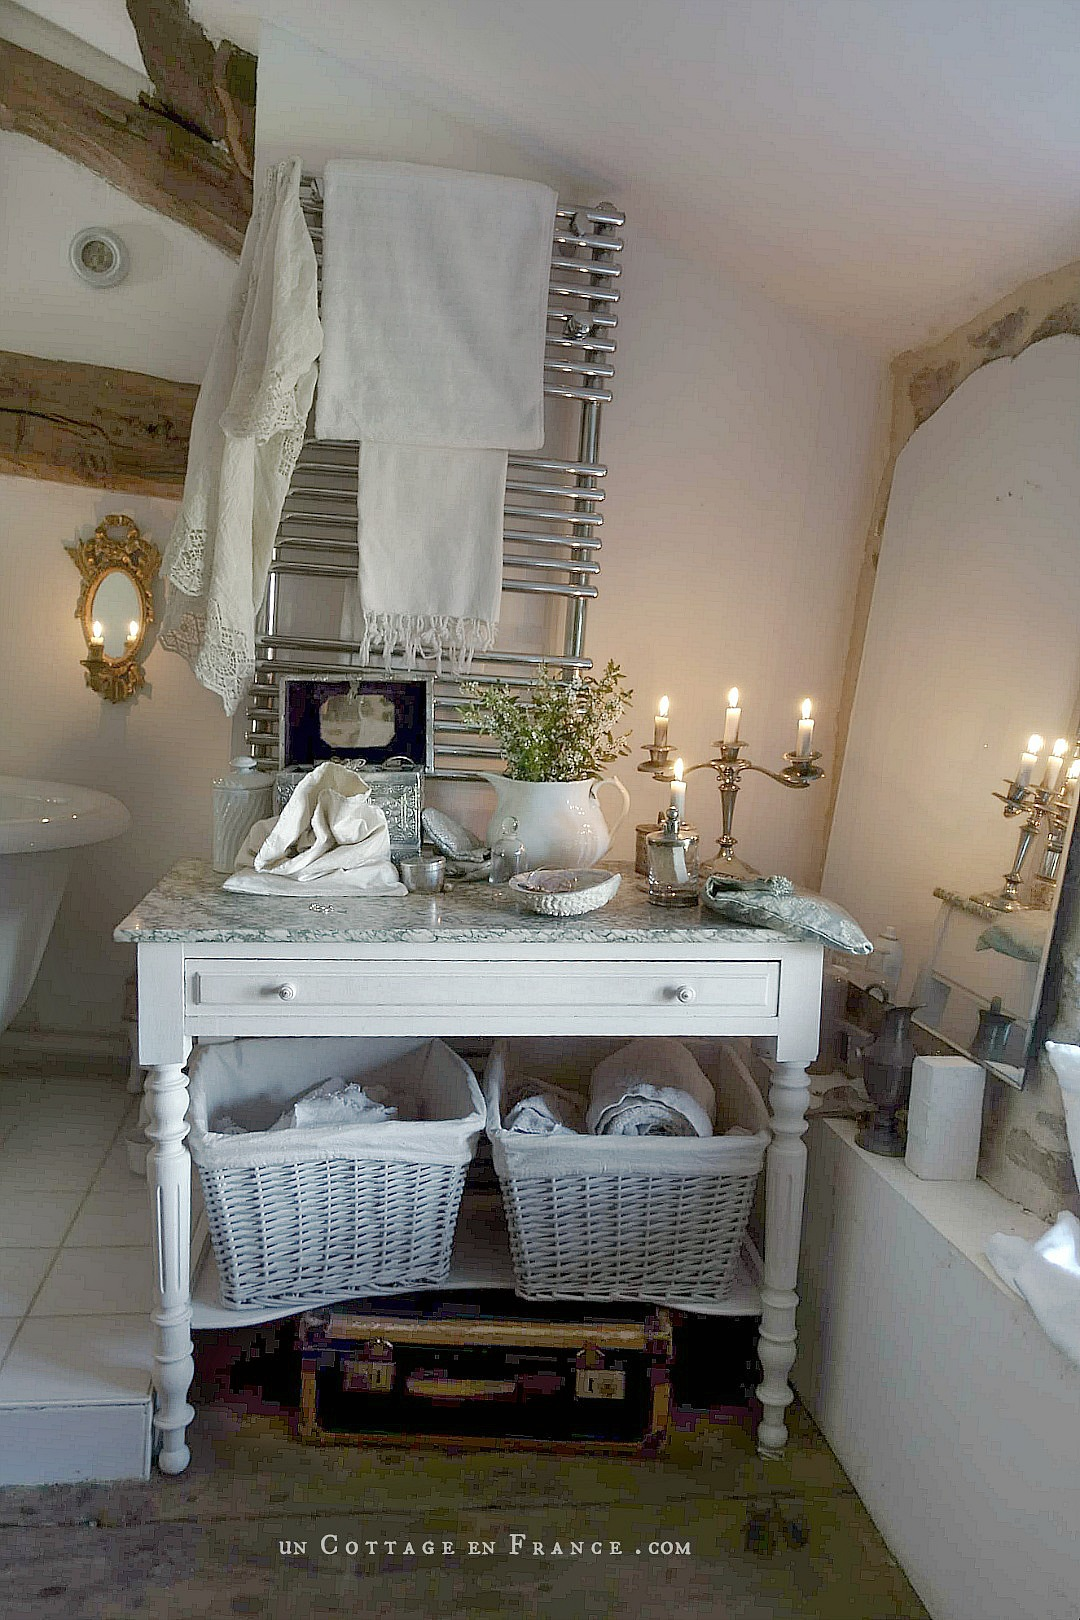 Morning slownesss, a sweet pink light on white walls brought by the candles |Lenteur matinale, une douce luminosité rose apportée par les bougies sur les murs blancs #candlelights #bathroomdecor #romanticbathroom #whitecottagecharm #uncottageenfrance #campagnechic #frenchinterior #frenchfarmhousestyle #frenchcountry #frenchliving #fixerupperstyle #shabbychicbathroom #frenchcountrycottage #allthingsfrench #frenchcottage #farmhousevignette #cottagevignette #chippypaint #frenchdecoration #fermette #countrychic #rustique #rusticdecor #decorustic #cottagedecor #maisondecampagne #campagnedecoration #countryhomemag #brocante